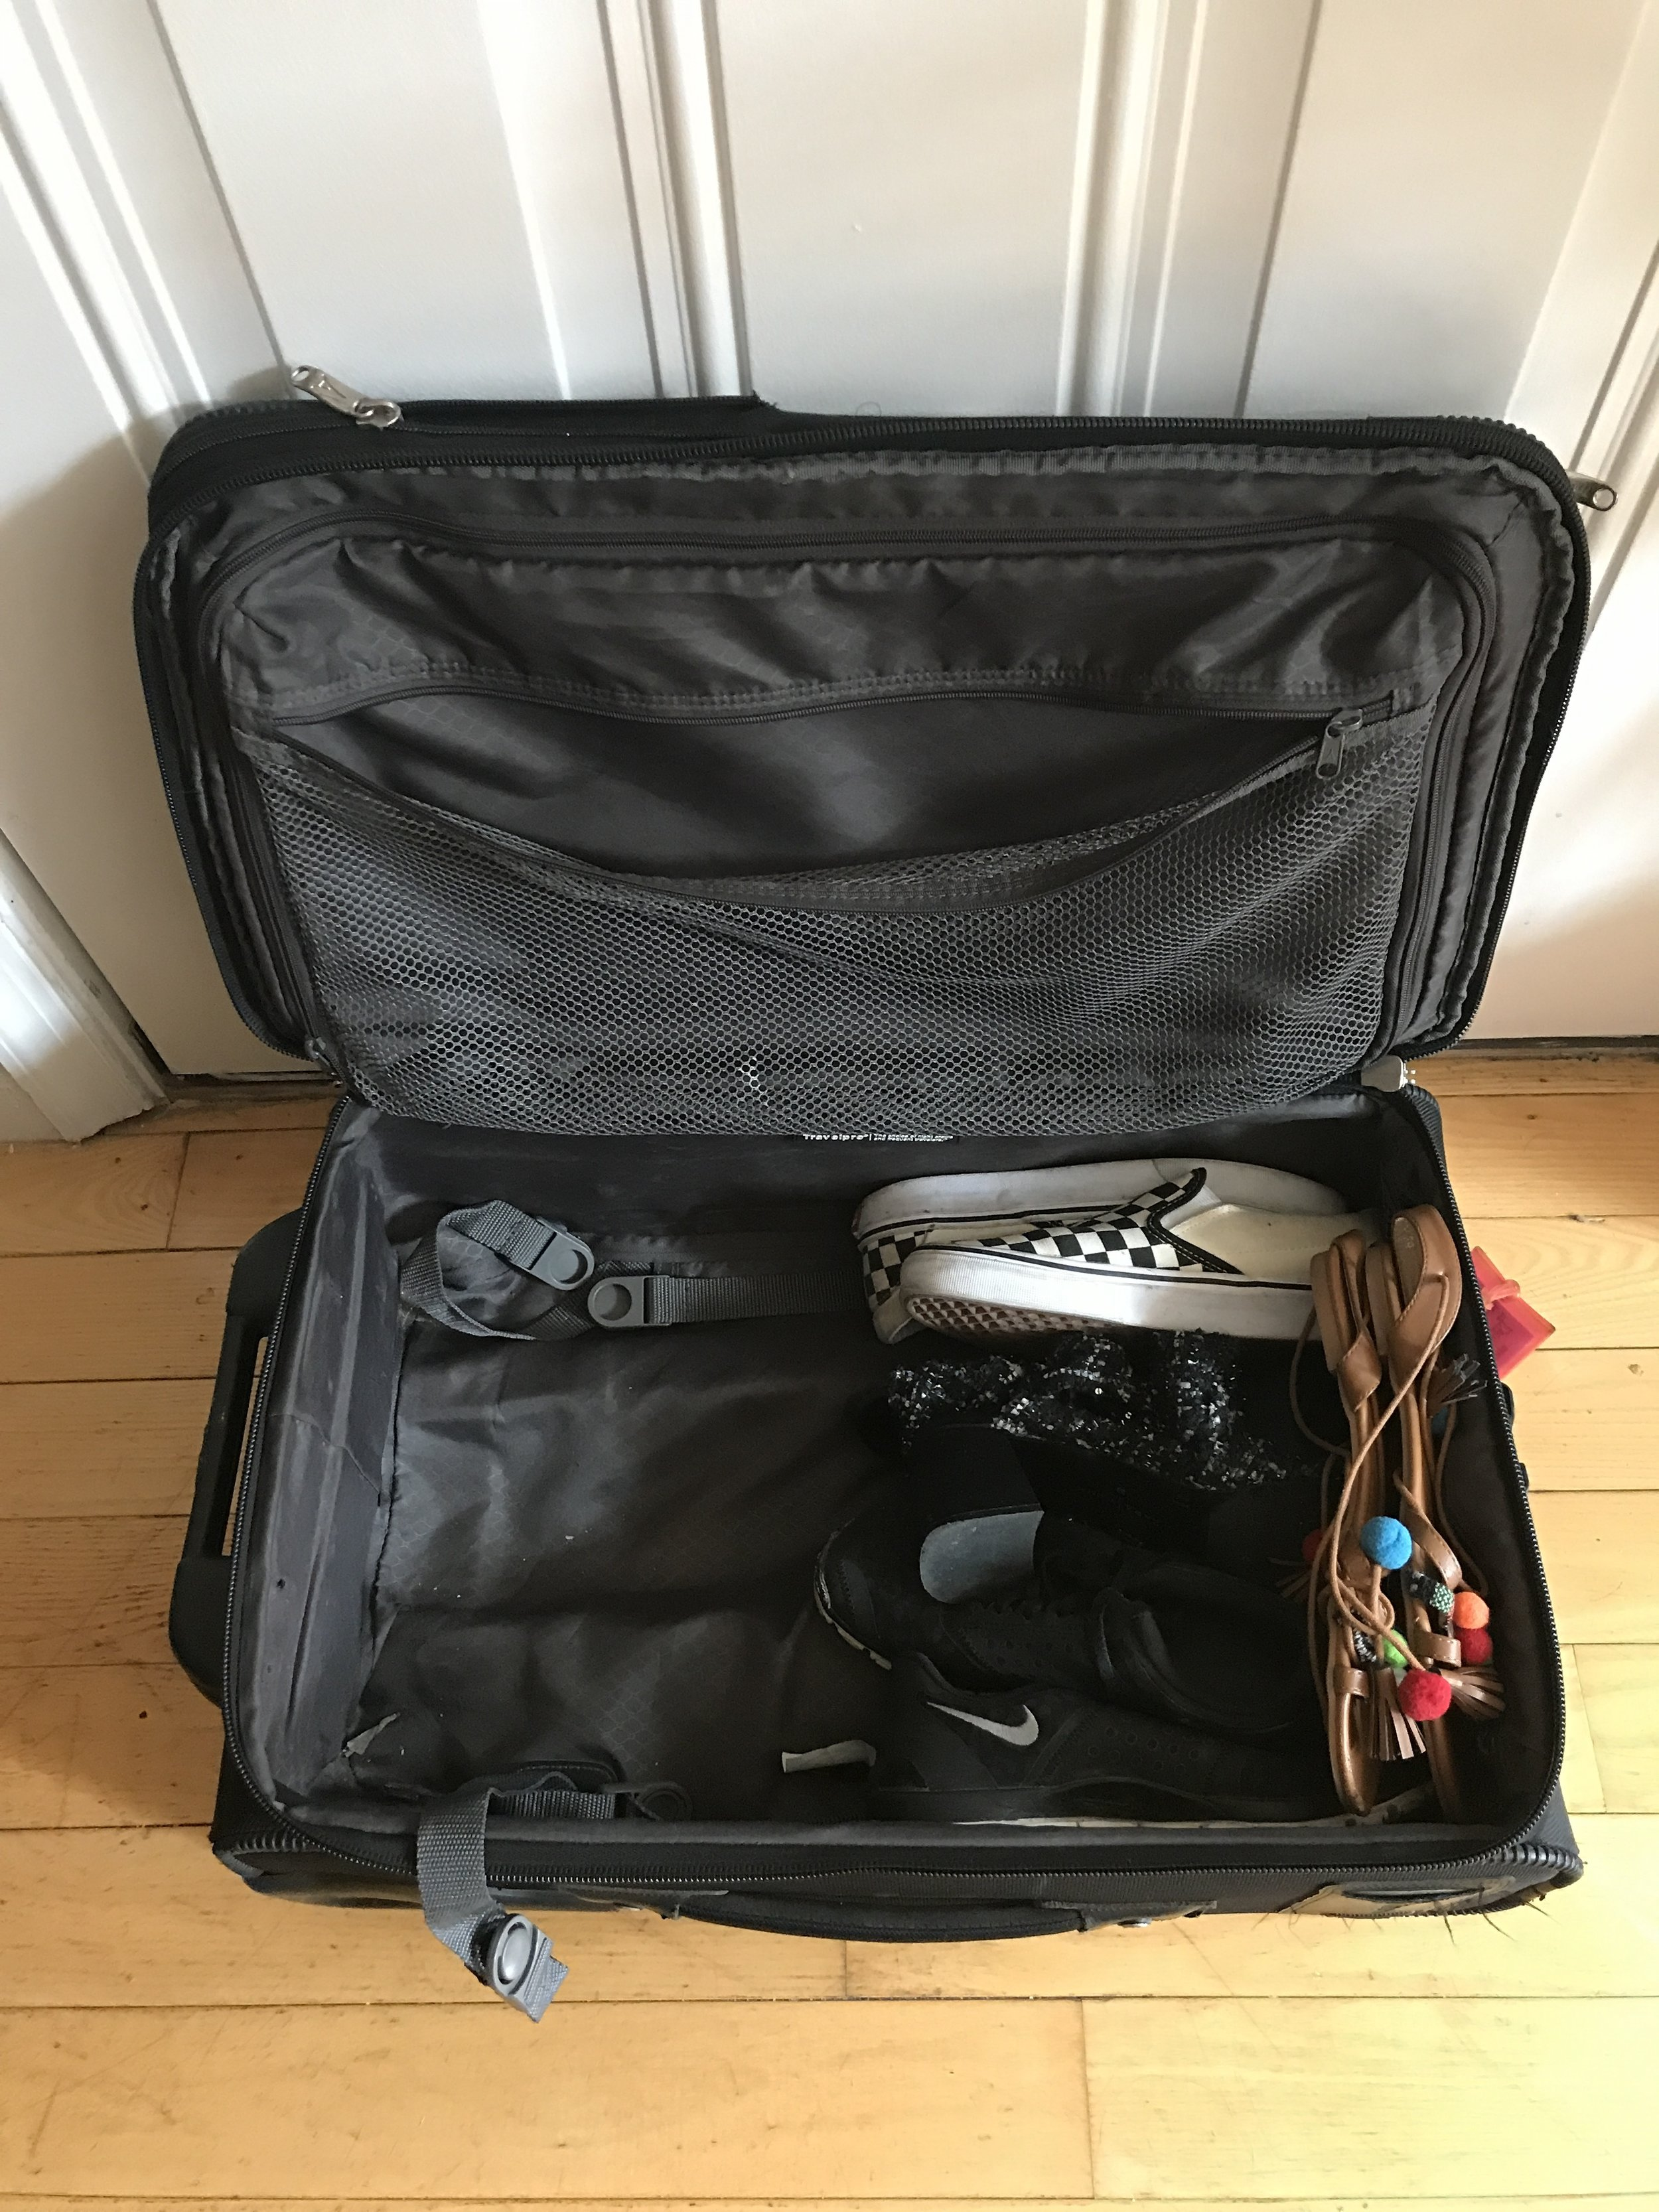 four pairs of shoes at the bottom of my bag